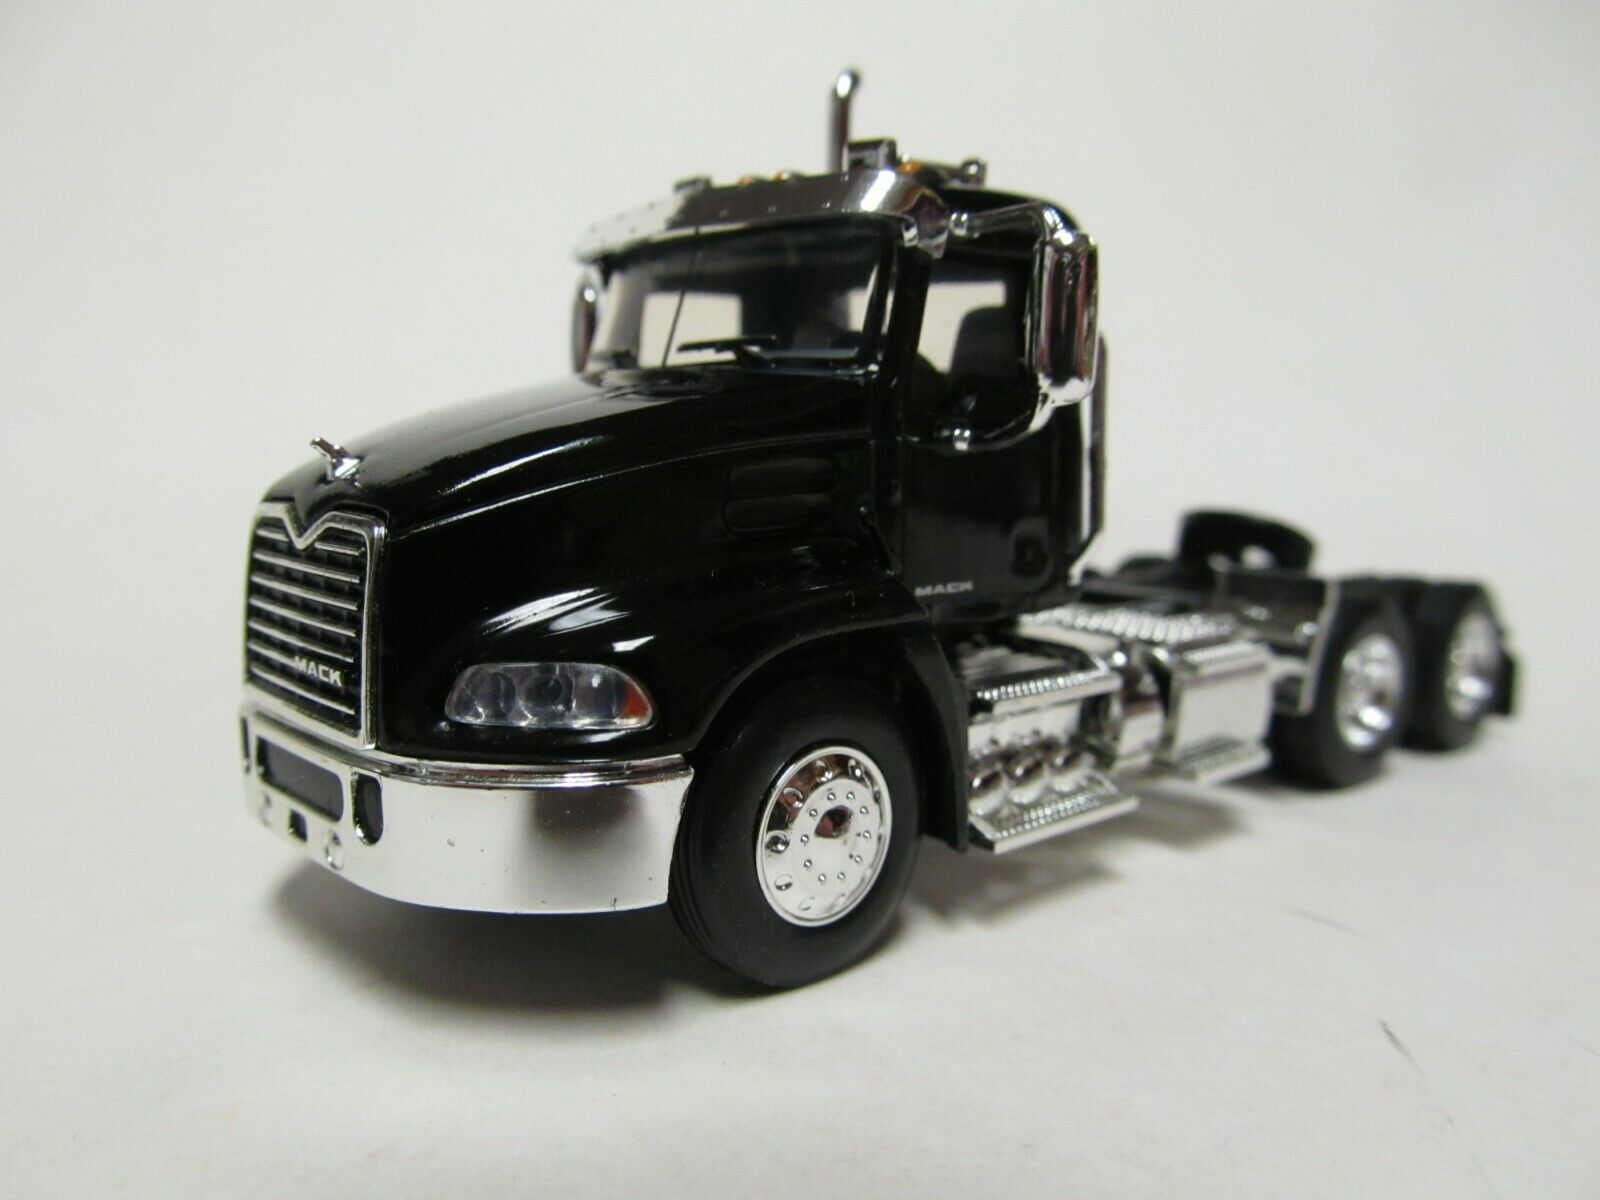 FIRST GEAR / DCP 1/64 SCALE  MACK PINNACLE DAY CAB, BLACK, BLACK FRAME